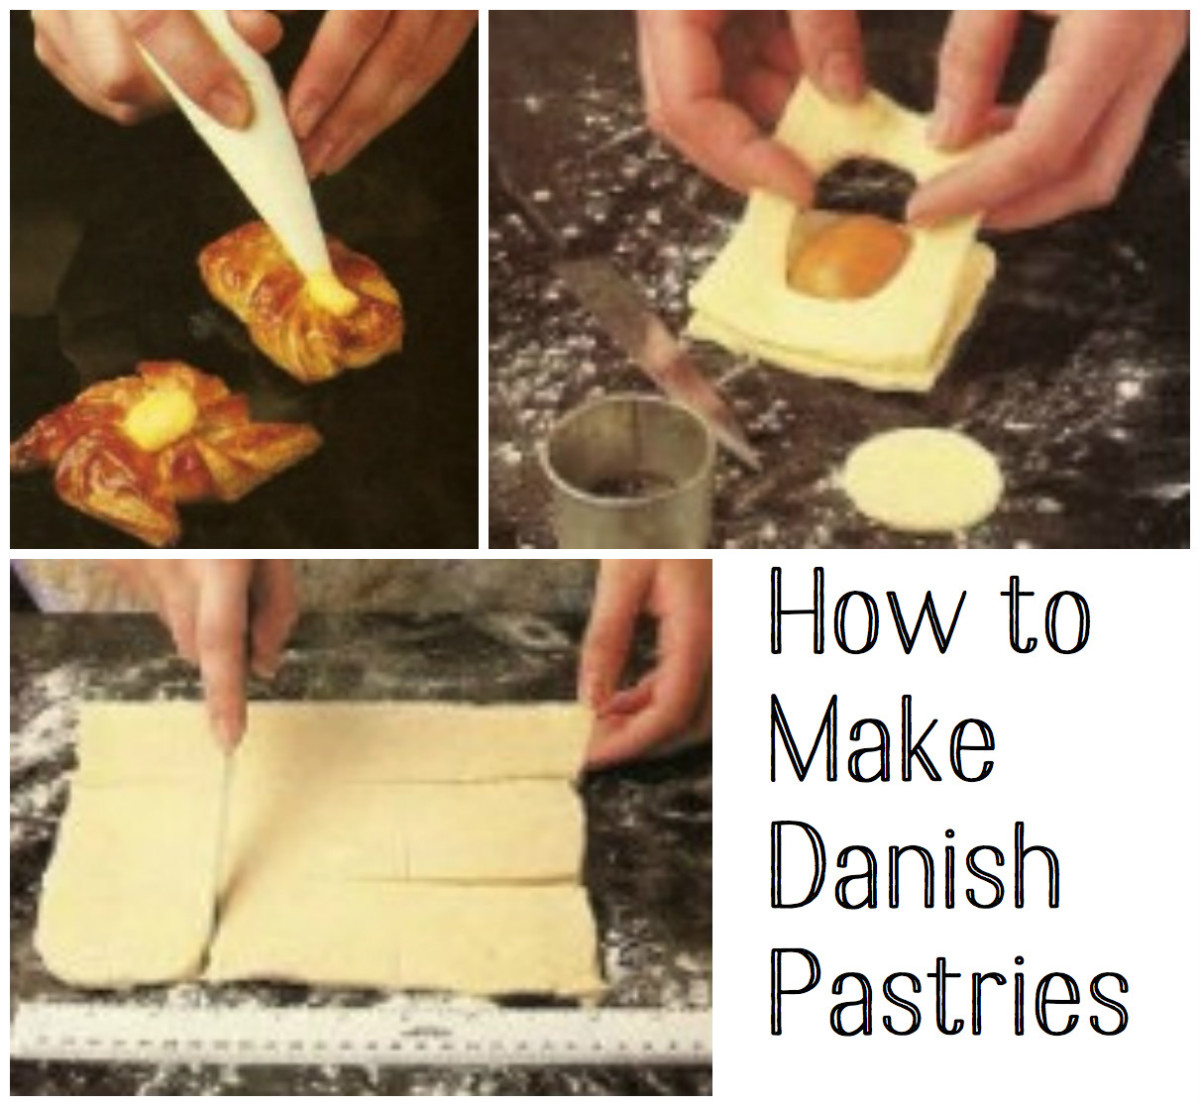 How to Make 9+ Danish Pastries: Step-by-Step With Pictures